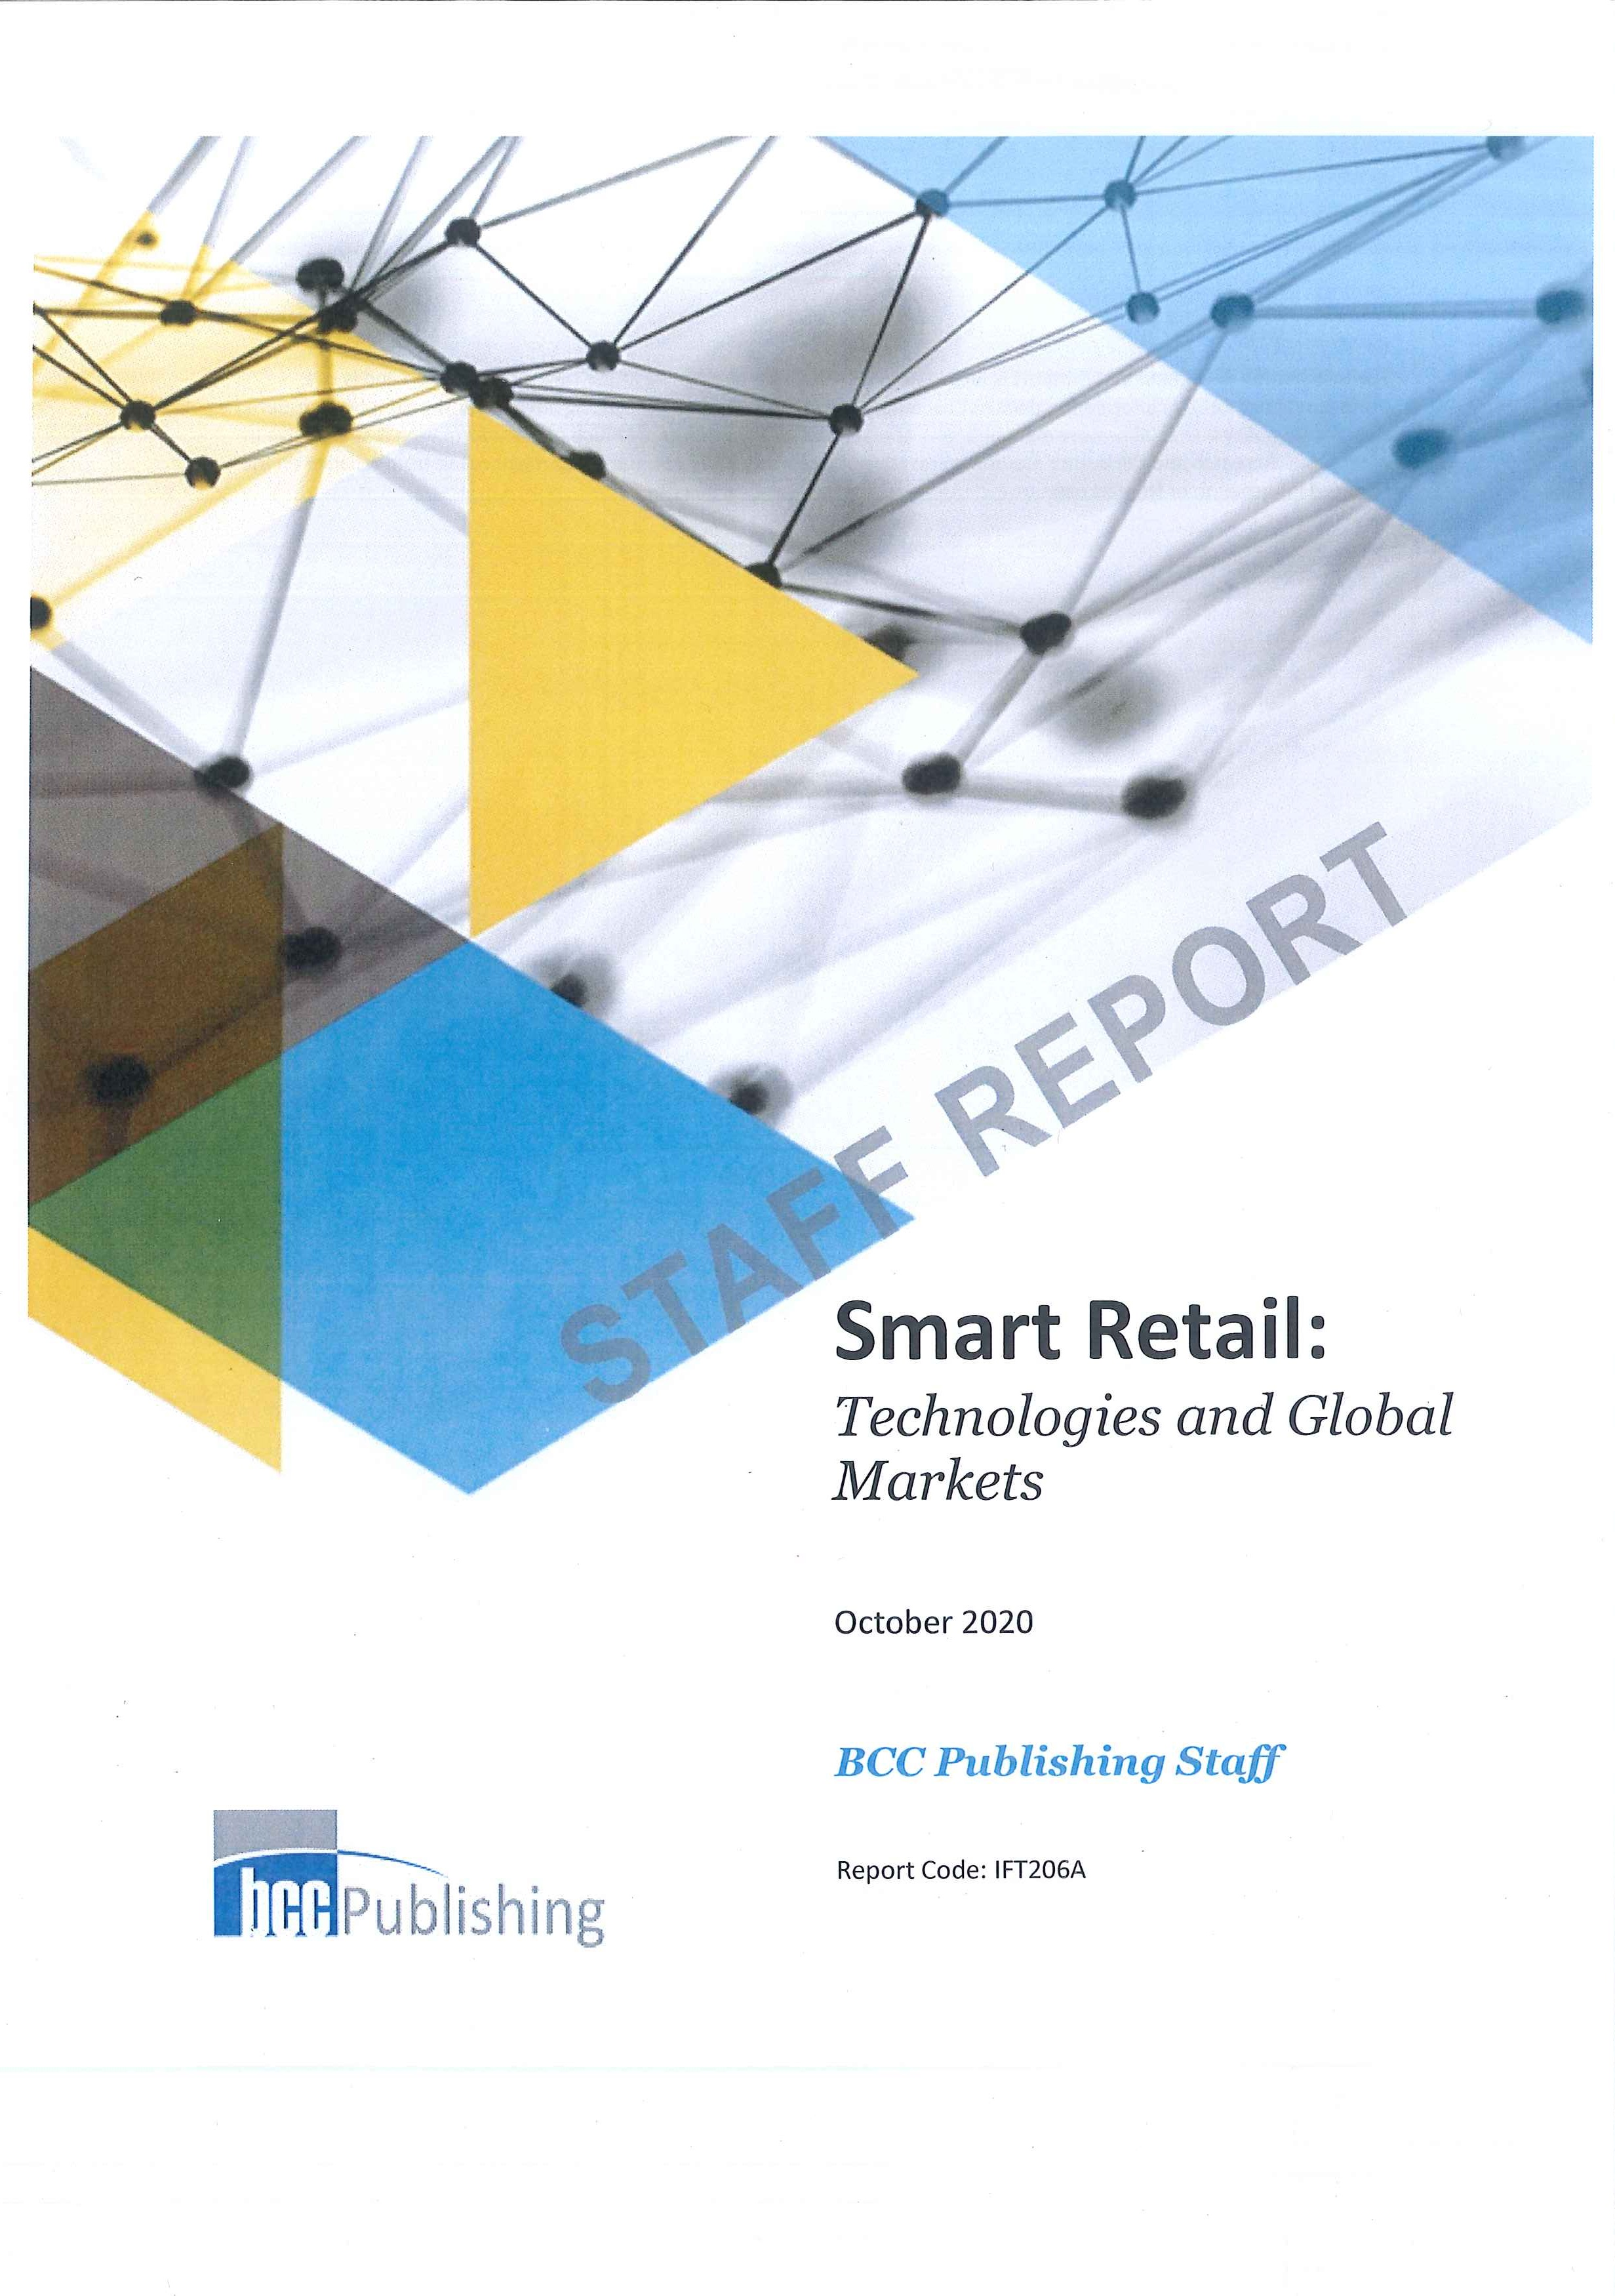 Smart retail [e-book]:technologies and global markets.